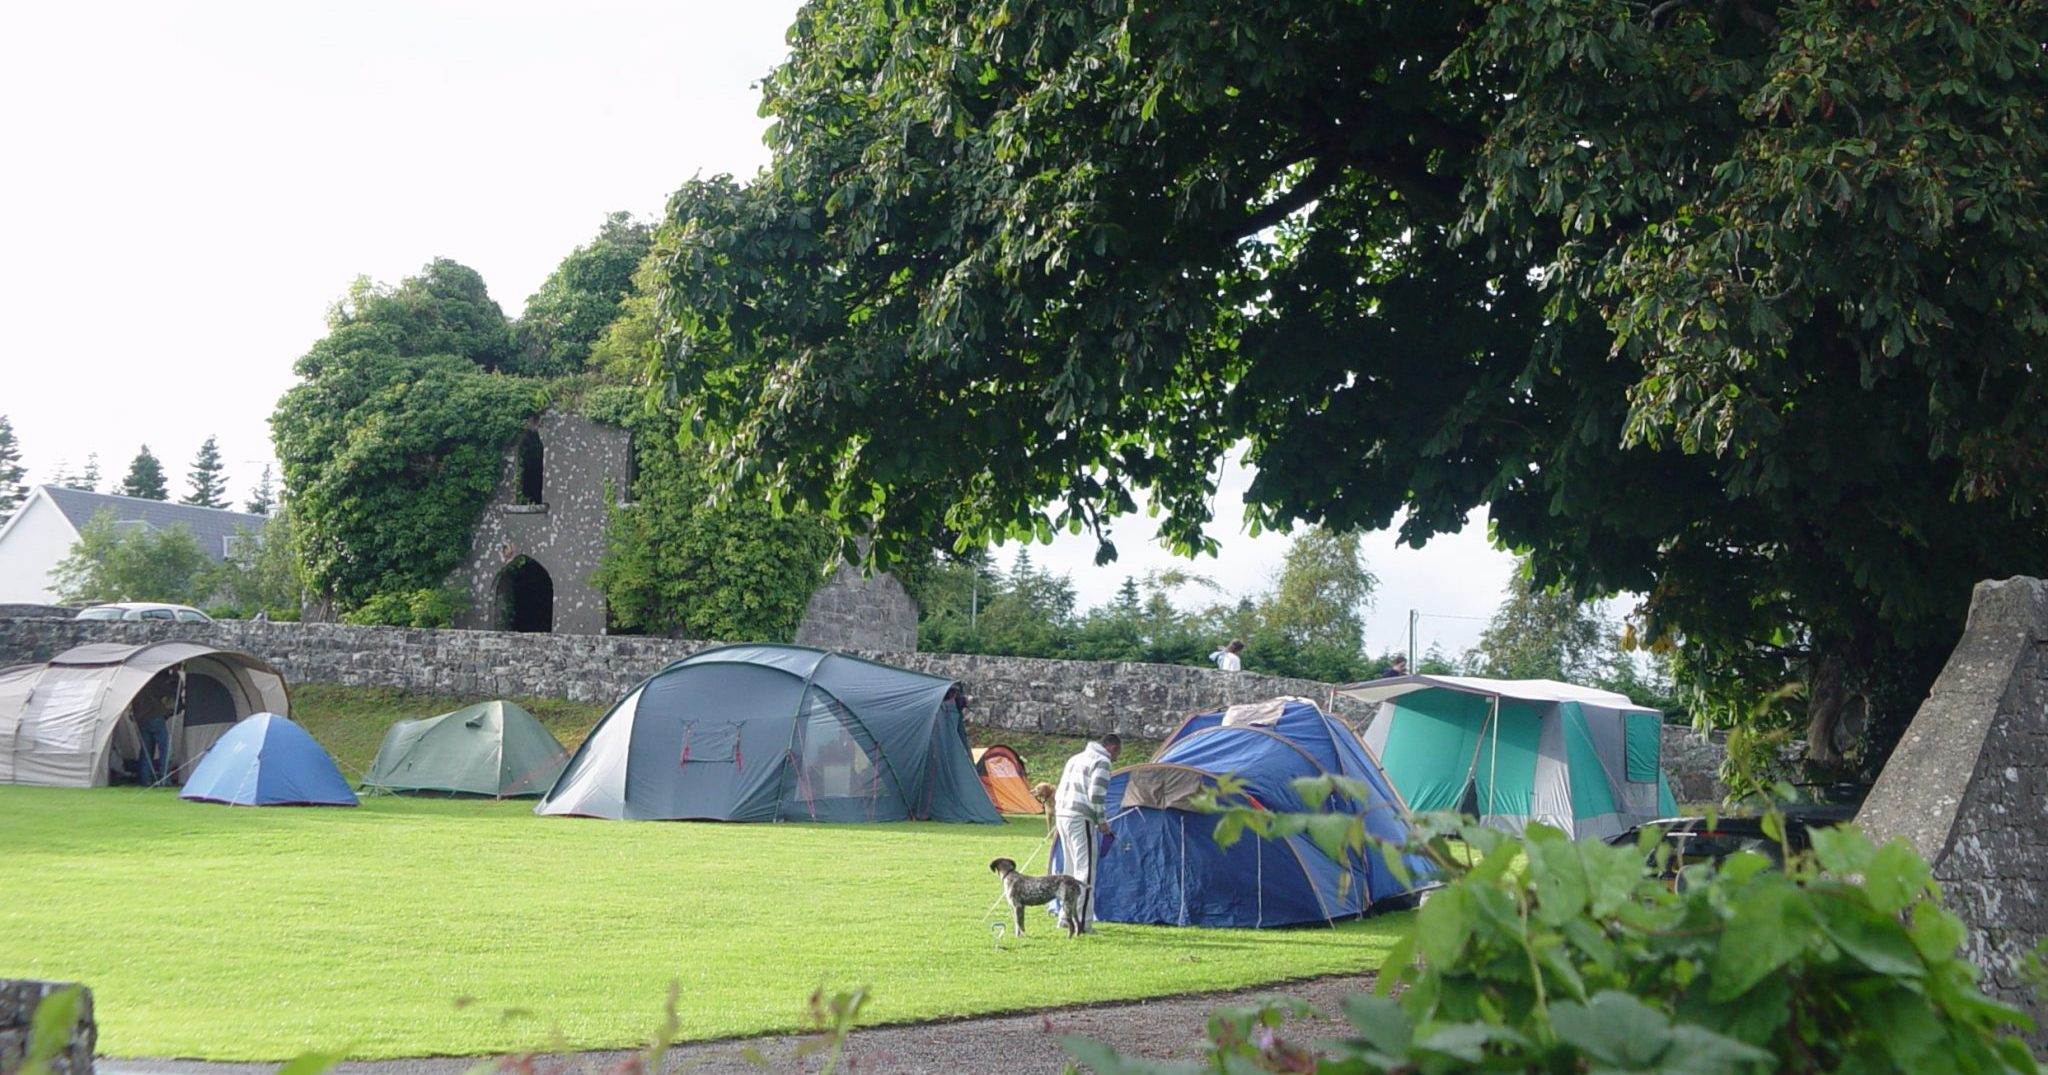 Campsites: 10 best sites in Ireland - uselesspenguin.co.uk